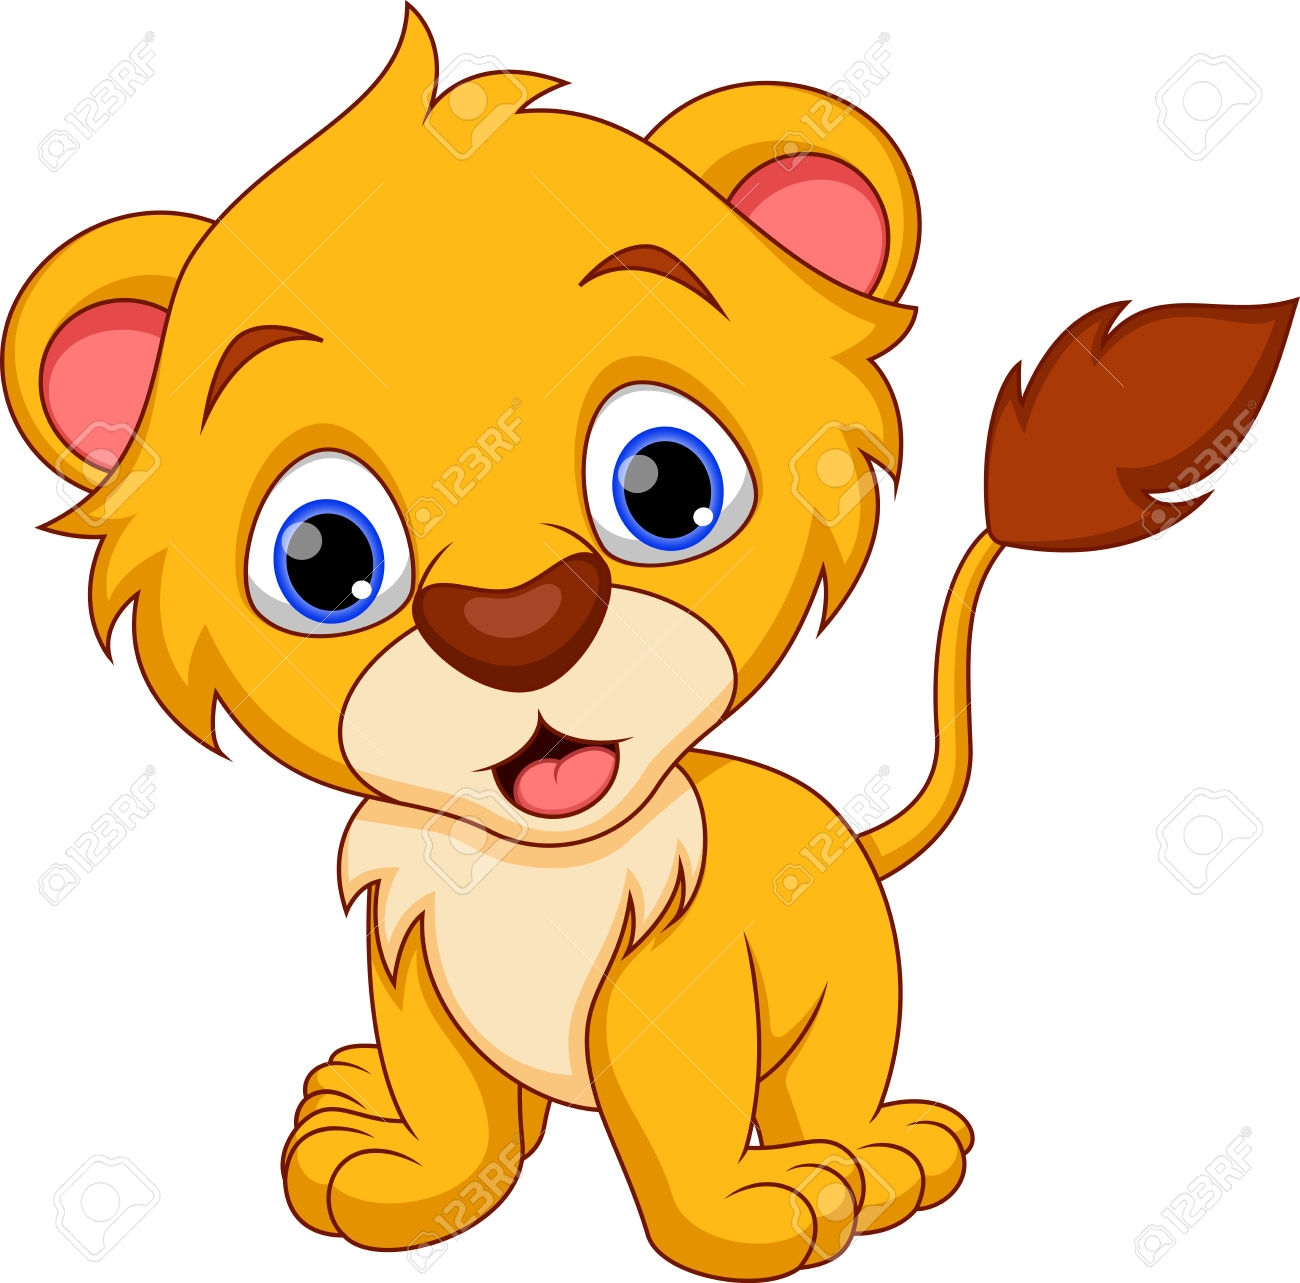 cute lion clipart at getdrawings com free for personal use cute rh getdrawings com cute lion cub clipart